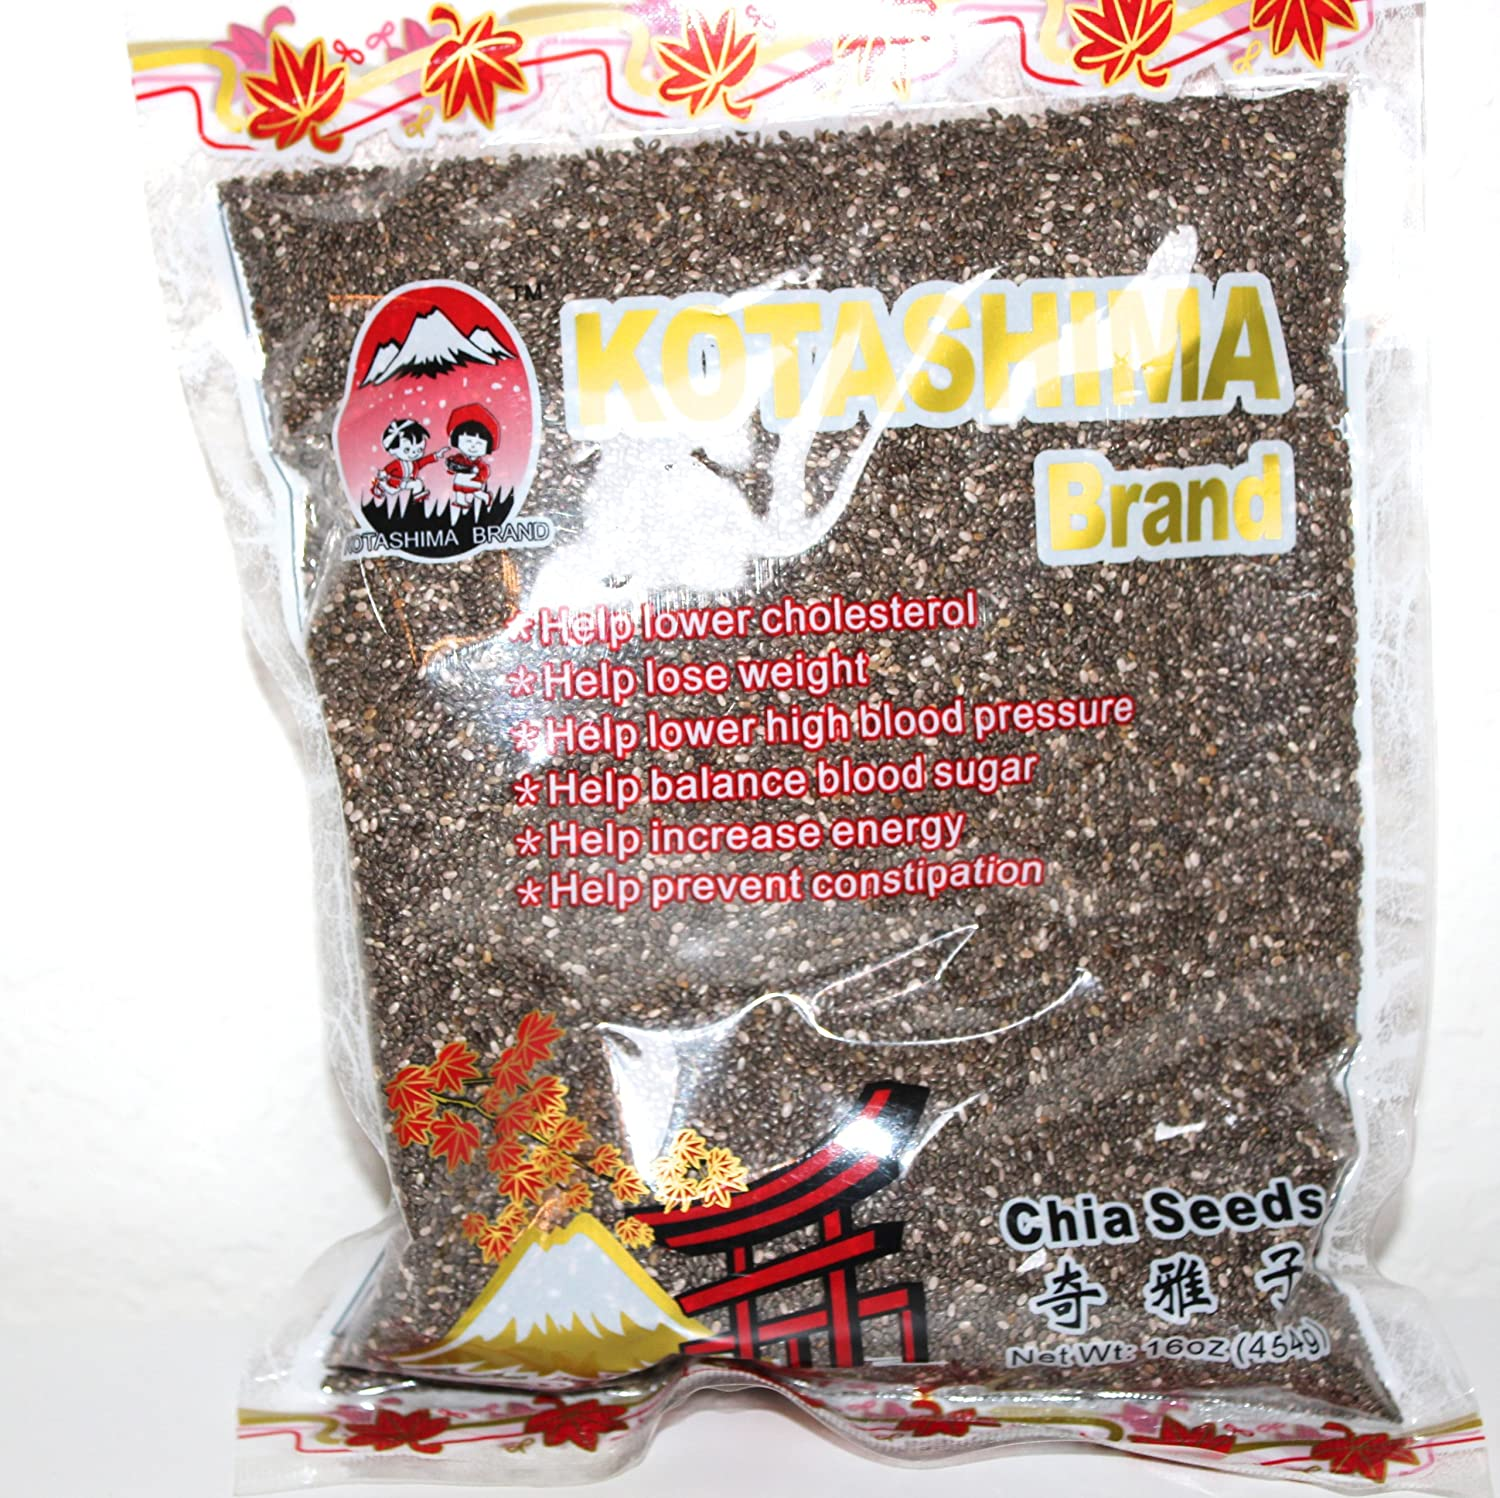 Amazon.com : Kotashima Brand Chia Seeds Net Wt: 16 Oz (454g ...